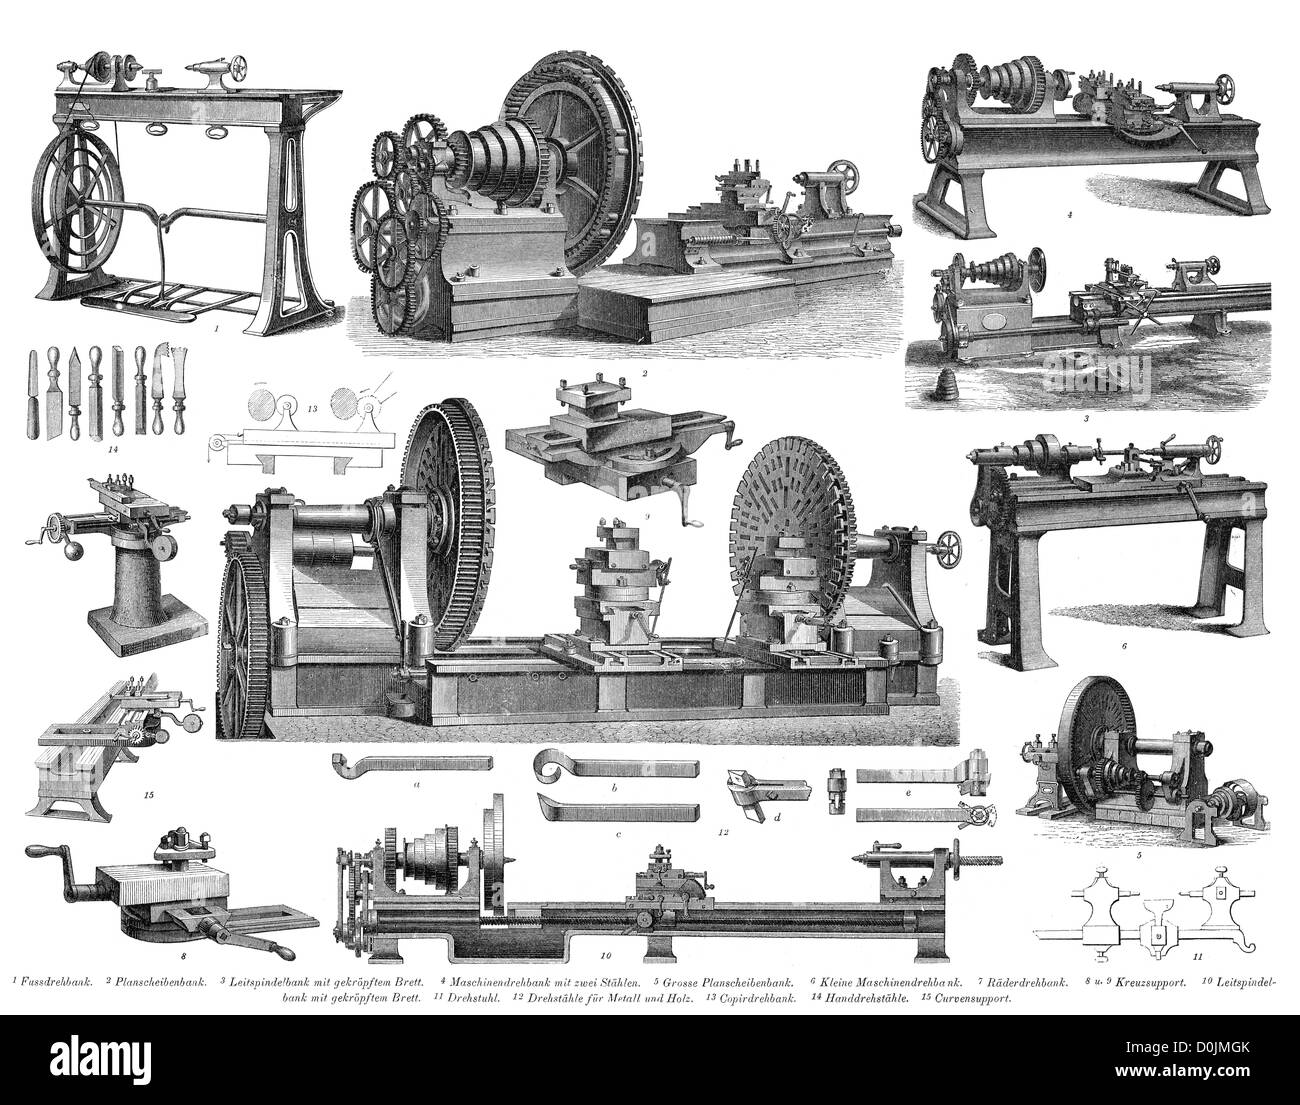 an overview of the industrial revolution and the introduction of the machinery to the modern world Hesitant19thncentury-experimentation-into-the-world's textile-machinery,-machine-tools  following-abrief-quantitative-overview,-we-review.